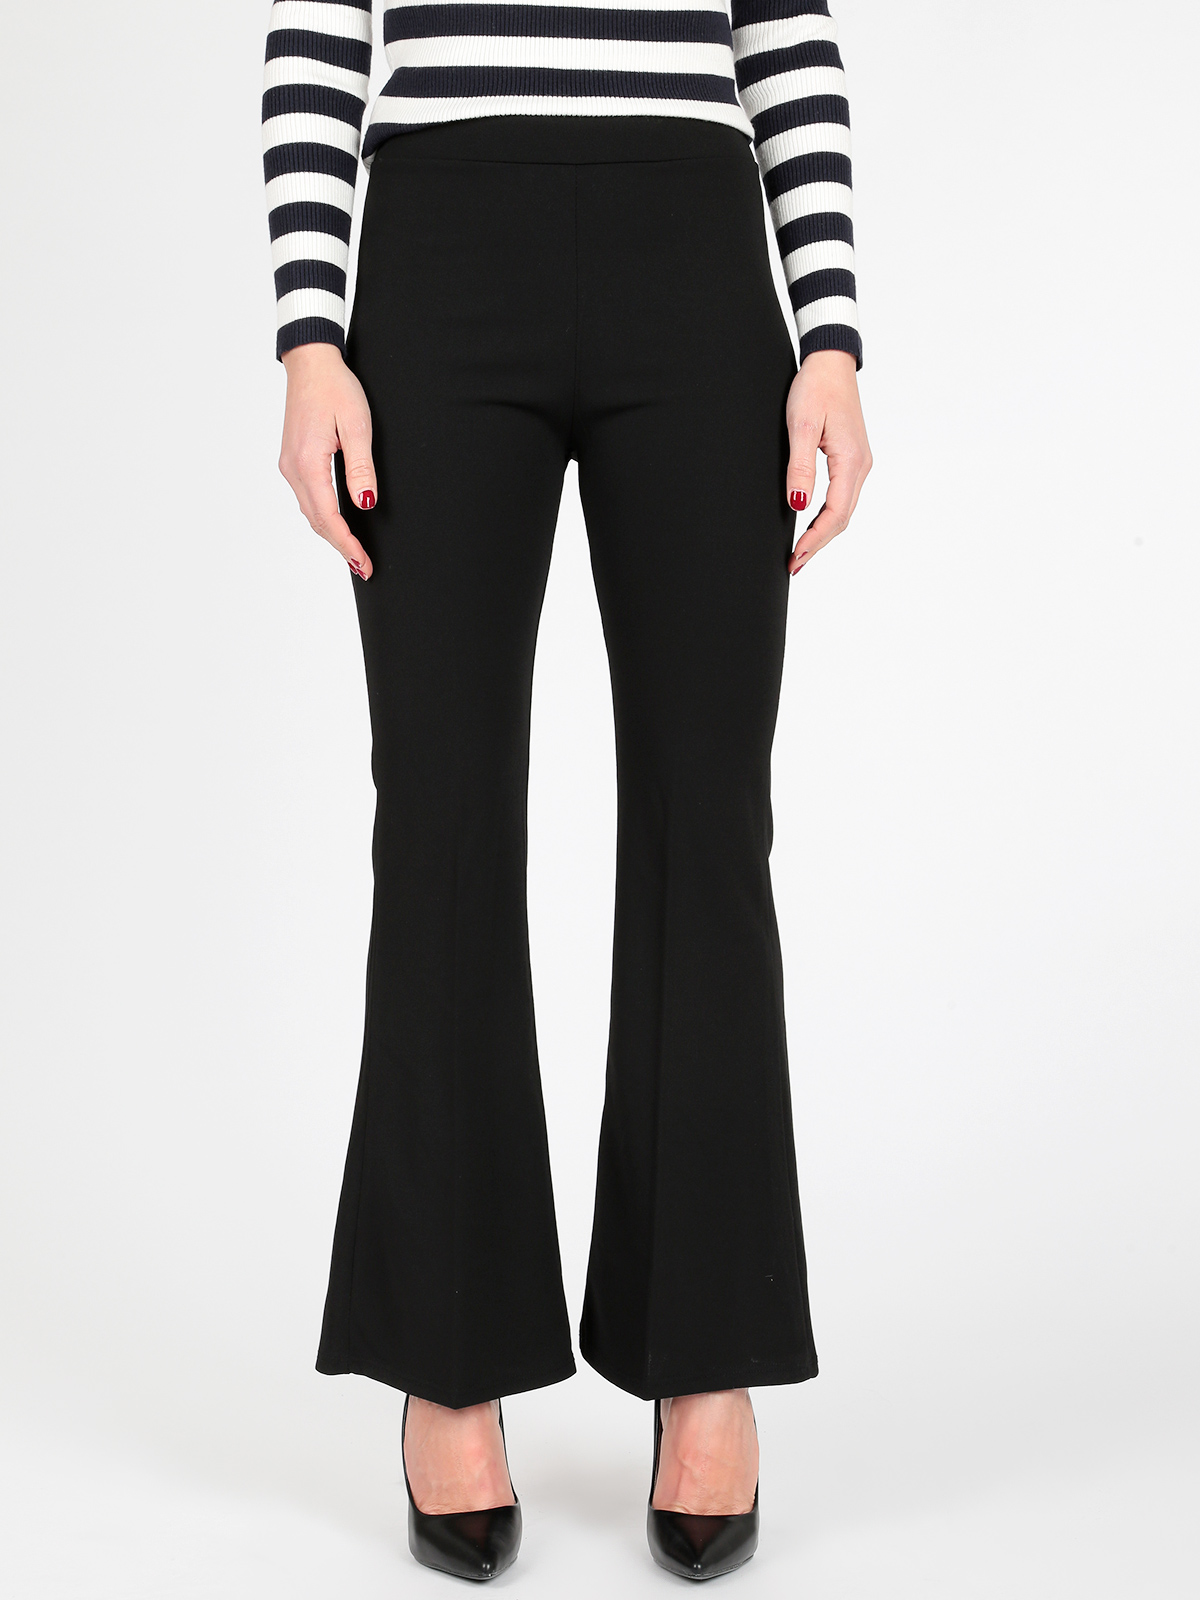 Casual Working Cloth Trousers Flare Slim Trousers